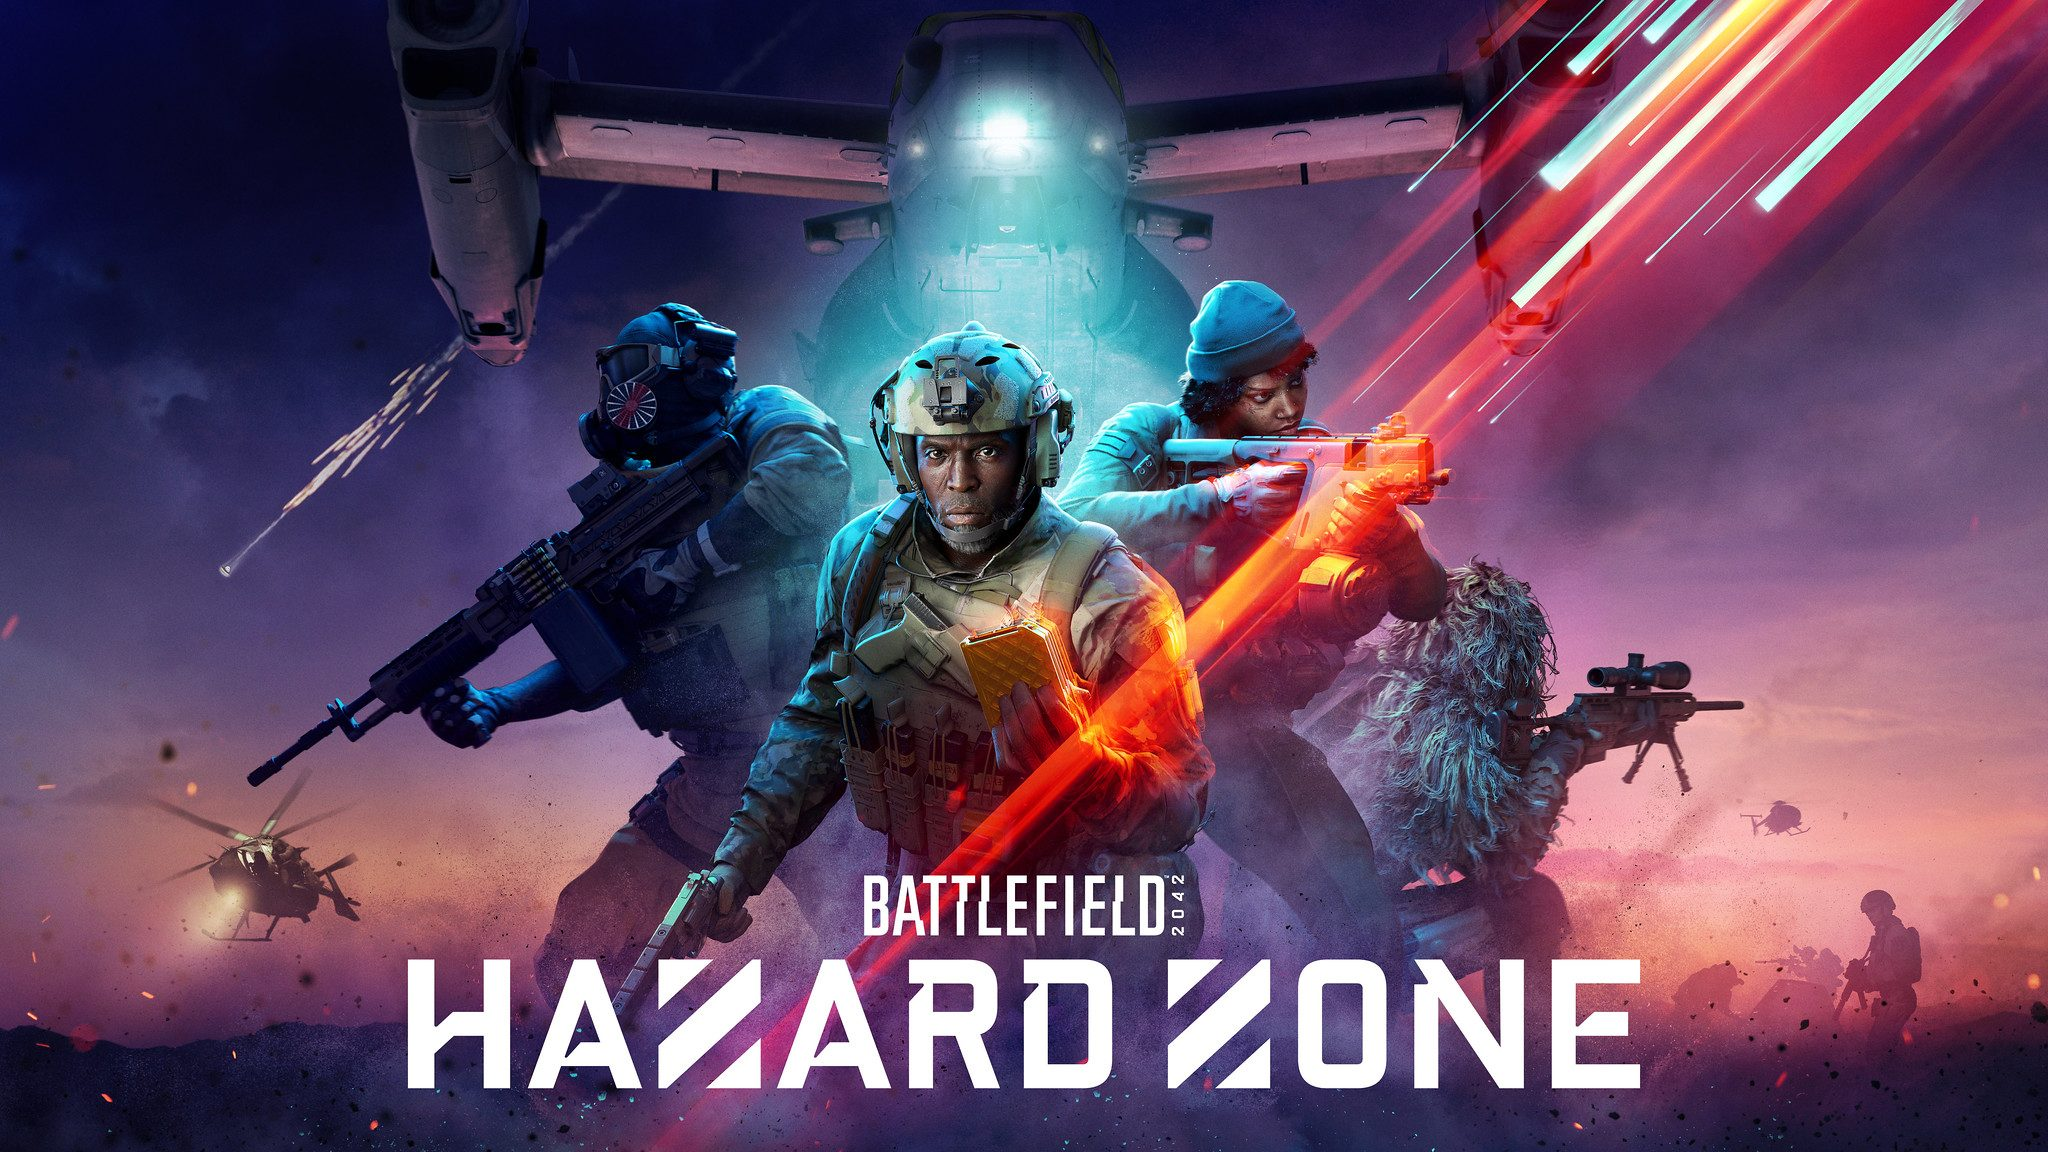 battlefield-hazard-zone-uncovered:-full-information-on-the-new-expertise-for-ps4-and-ps5